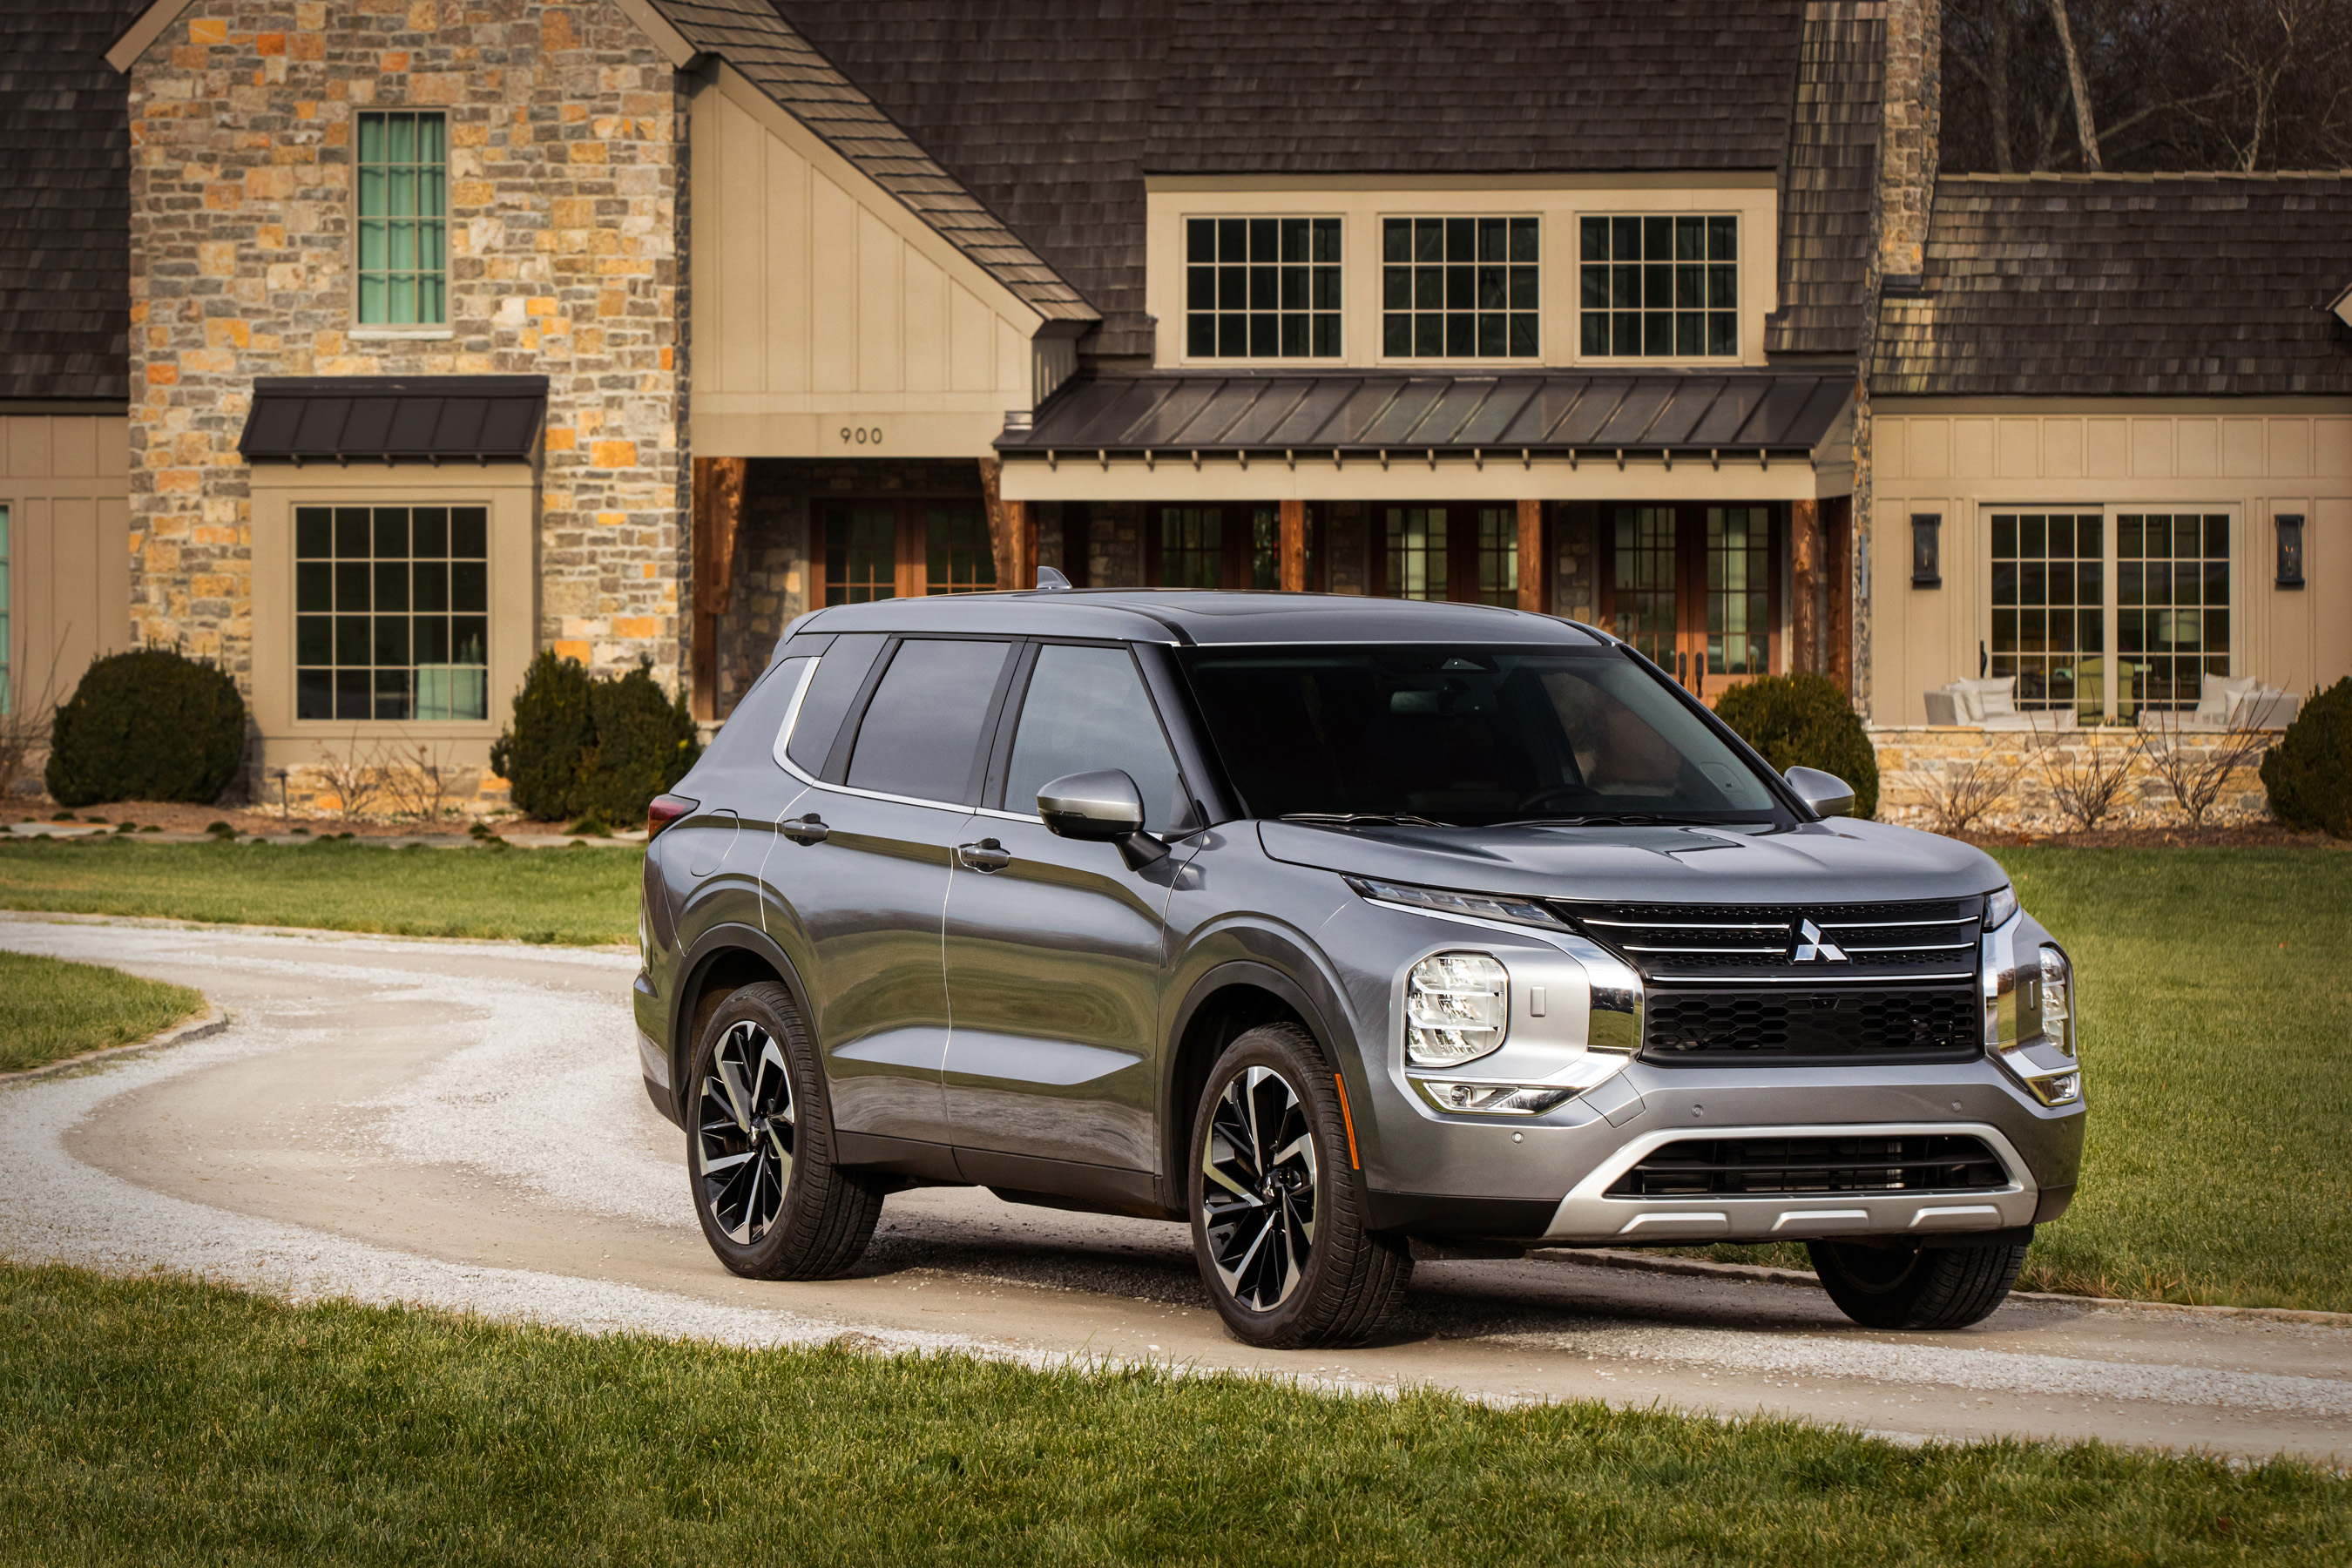 myQ Connected Garage is available in the all-new 2022 Mitsubishi Outlander.